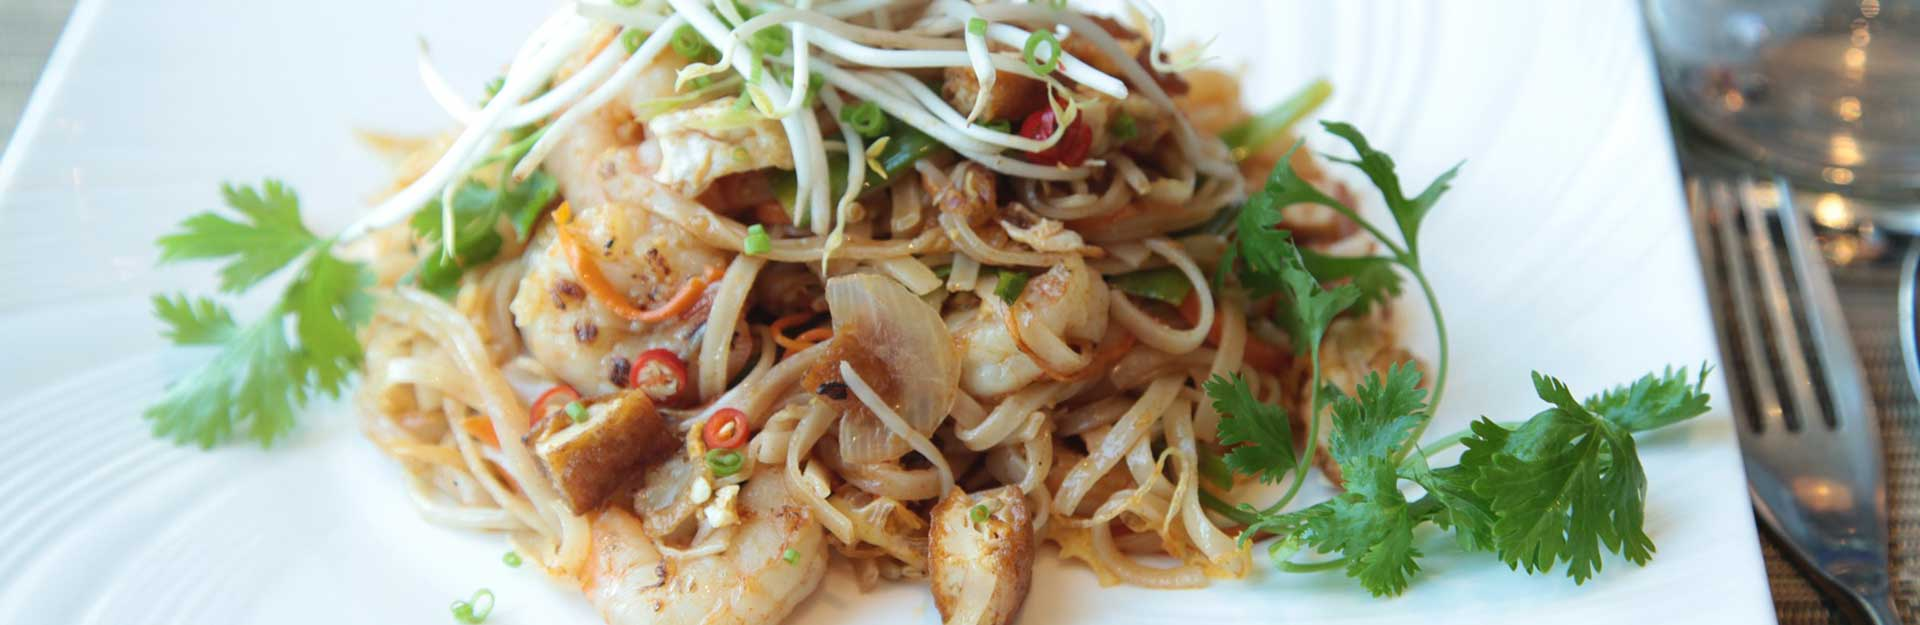 a Thai stir-fry, a dish that can be made with shirataki noodles